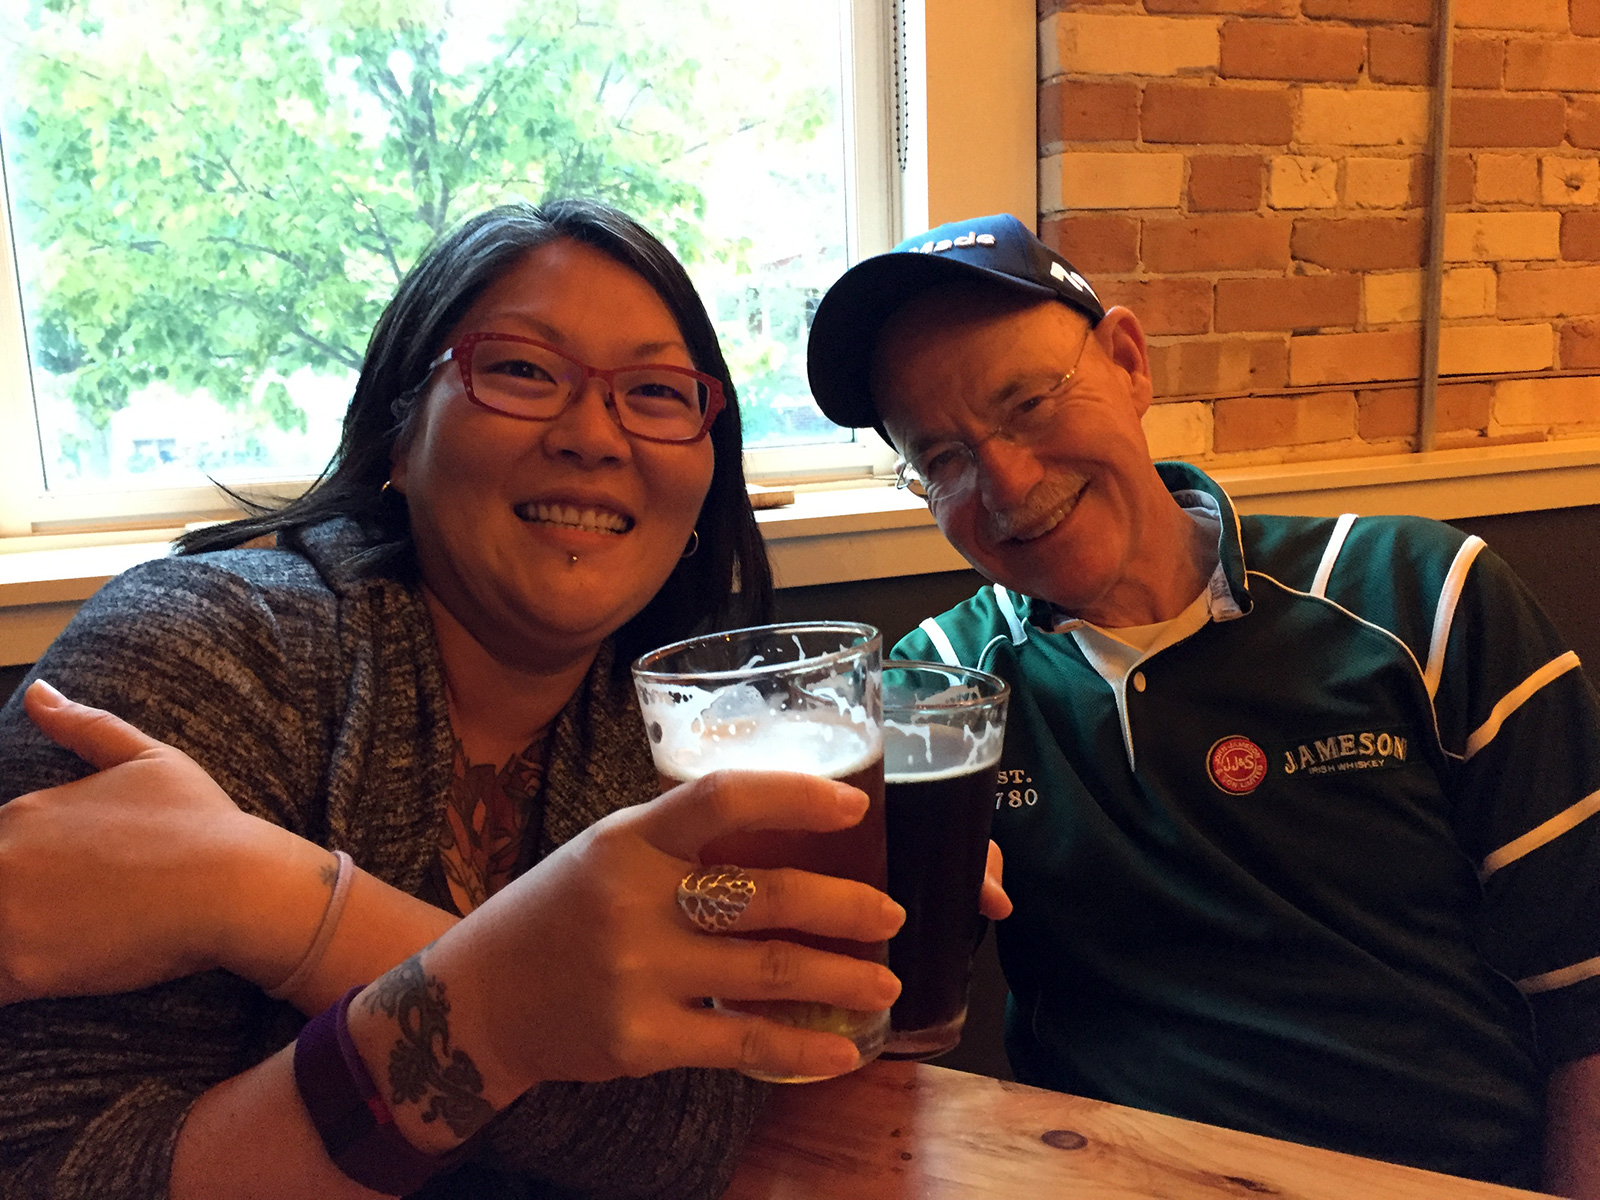 Grand Armory Brewing in Grand Haven, Michigan by Jets Like Taxis